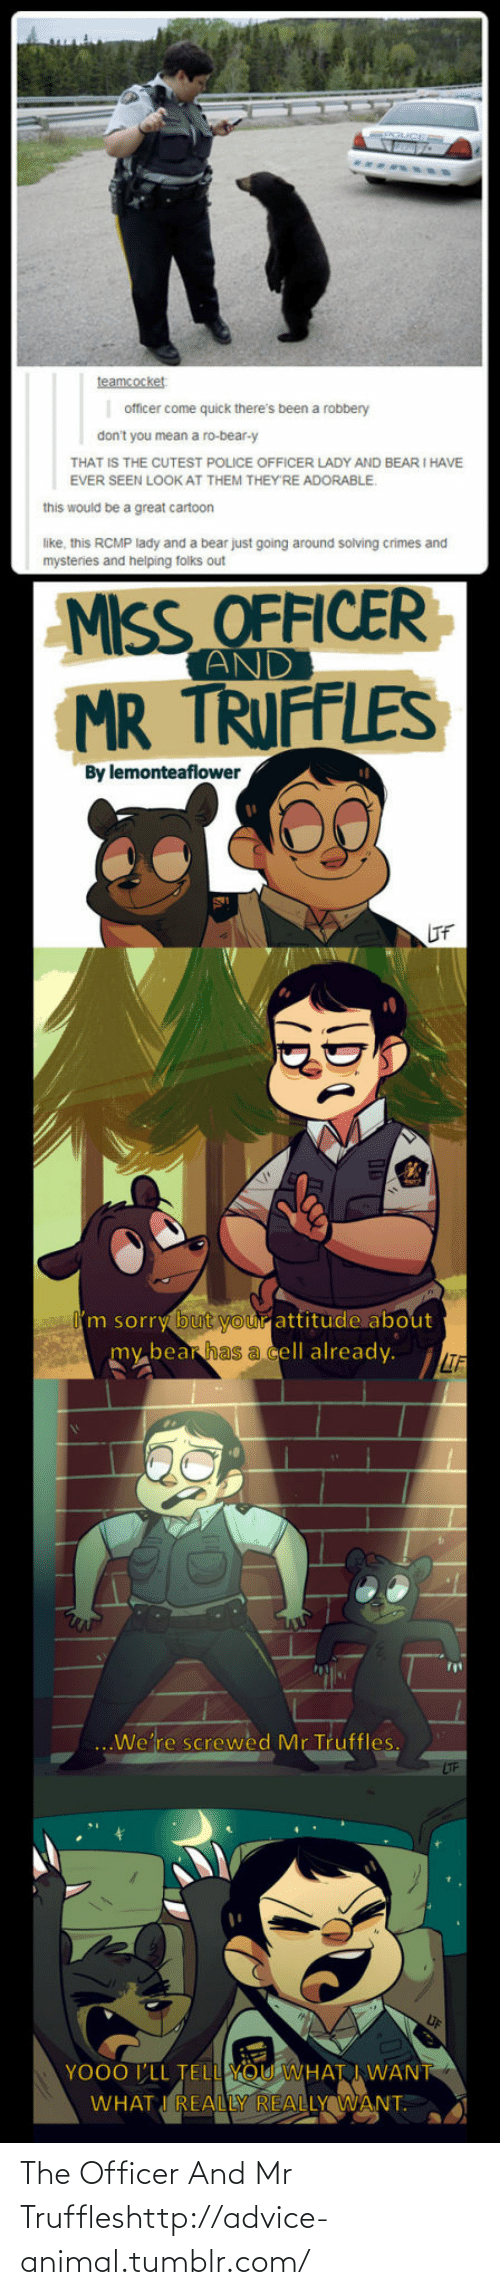 Advice, Police, and Sorry: teamcocket  officer come quick there's been a robbery  don't you mean a ro-bear-y  THAT IS THE CUTEST POLICE OFFICER LADY AND BEAR I HAVE  EVER SEEN LOOK AT THEM THEY'RE ADORABLE.  this would be a great cartoon  like, this RCMP lady and a bear just going around solving crimes and  mysteries and helping folks out  MISS OFFICER  AND  TRUFFLES  MR  By lemonteaflower  IF  I'm sorry but your attitude about  my bear has a cell already.  IF  We're screwed Mr Truffles.  LIF  YO00 I'LL TELL YOU WHAT I WANT  WHAT I REALLY REALLY WANT. The Officer And Mr Truffleshttp://advice-animal.tumblr.com/